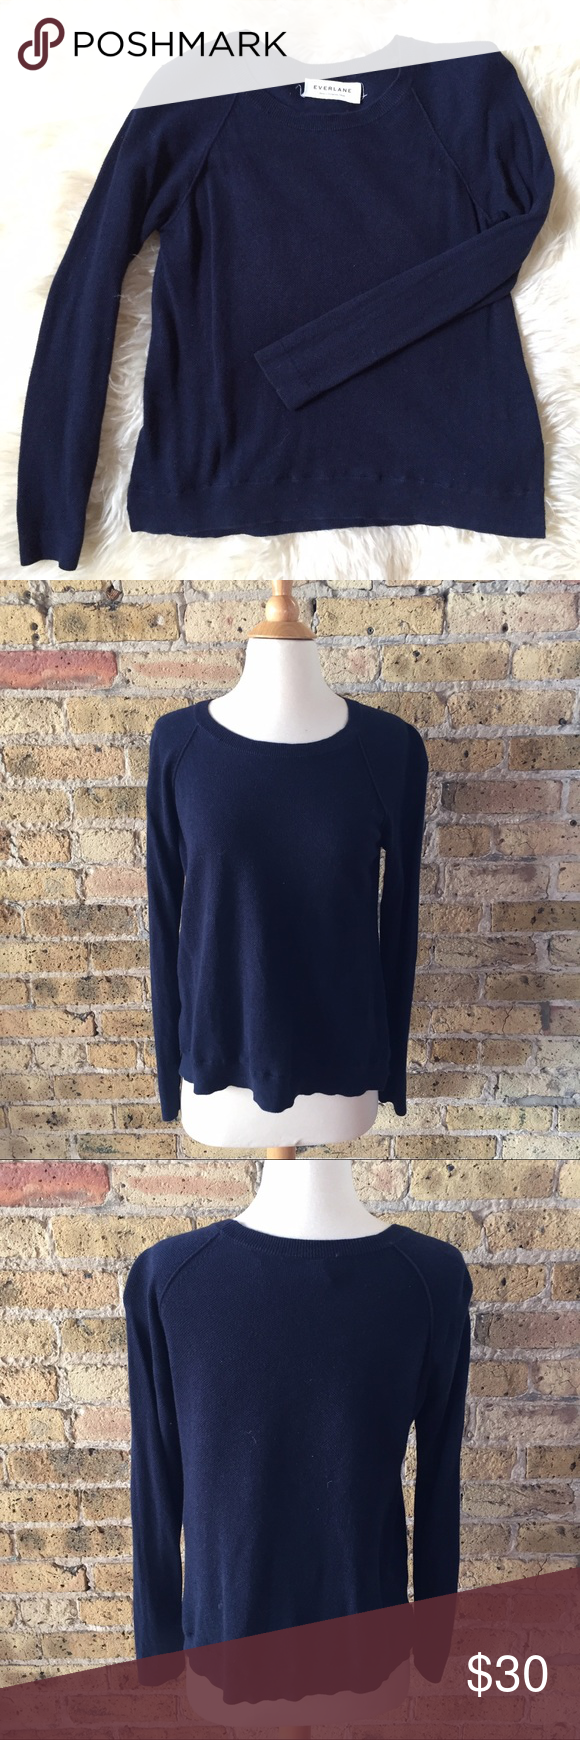 Everlane cotton cashmere navy crew sweater S | Cashmere, Cashmere ...